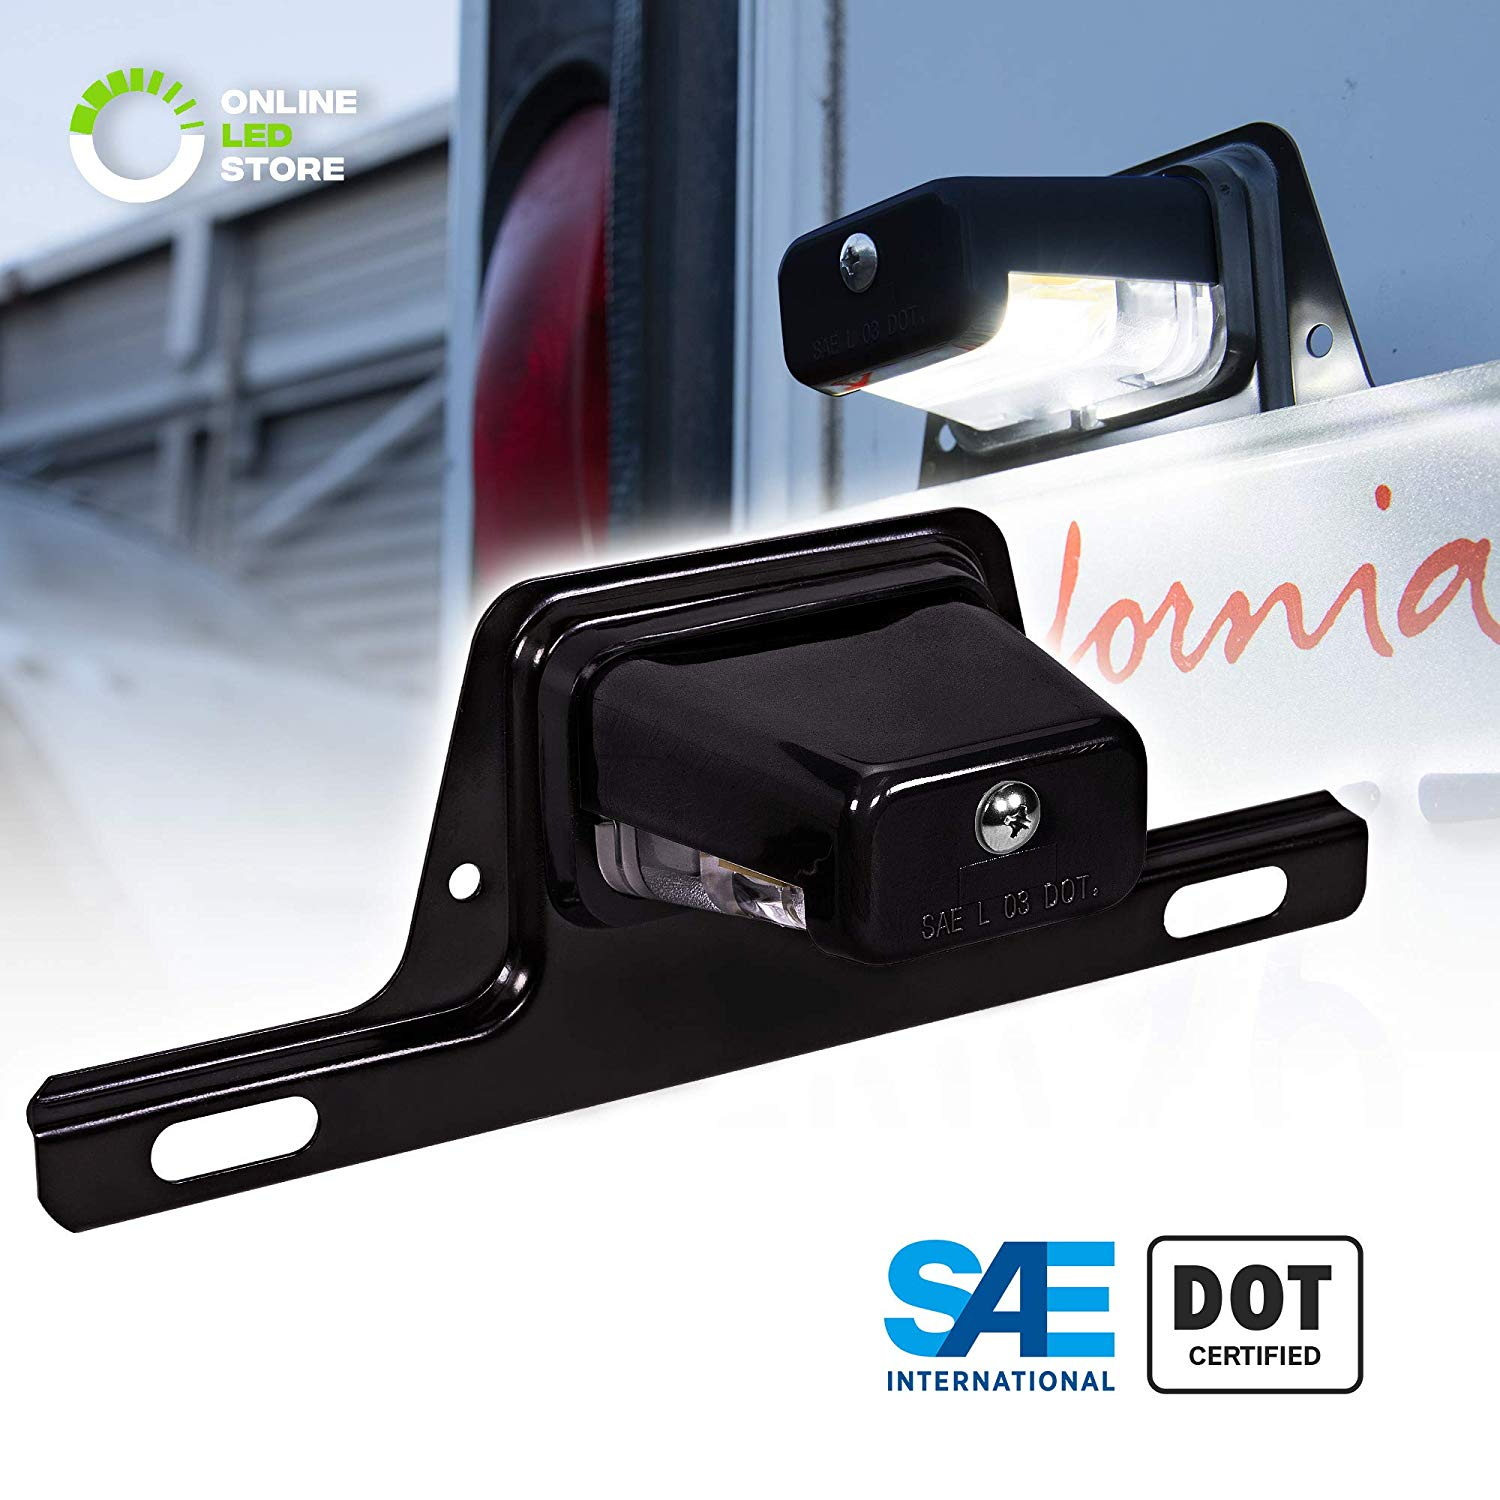 LED Trailer License Plate Lights w/Bracket [SAE/DOT Certified]